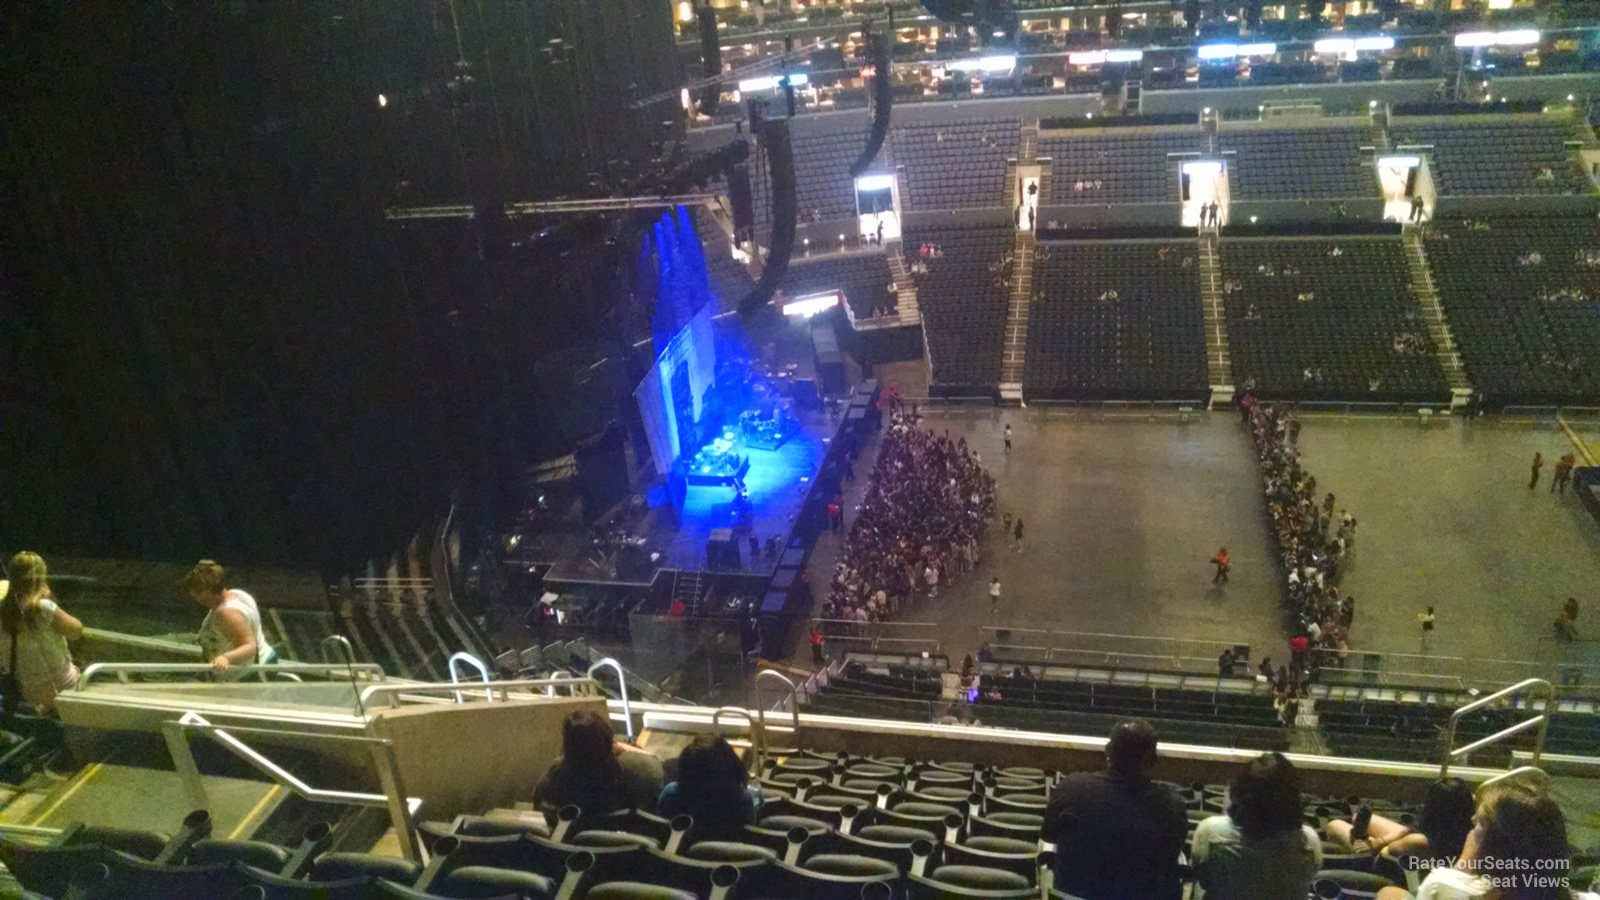 Staples Center Section 319 Concert Seating Rateyourseats Com